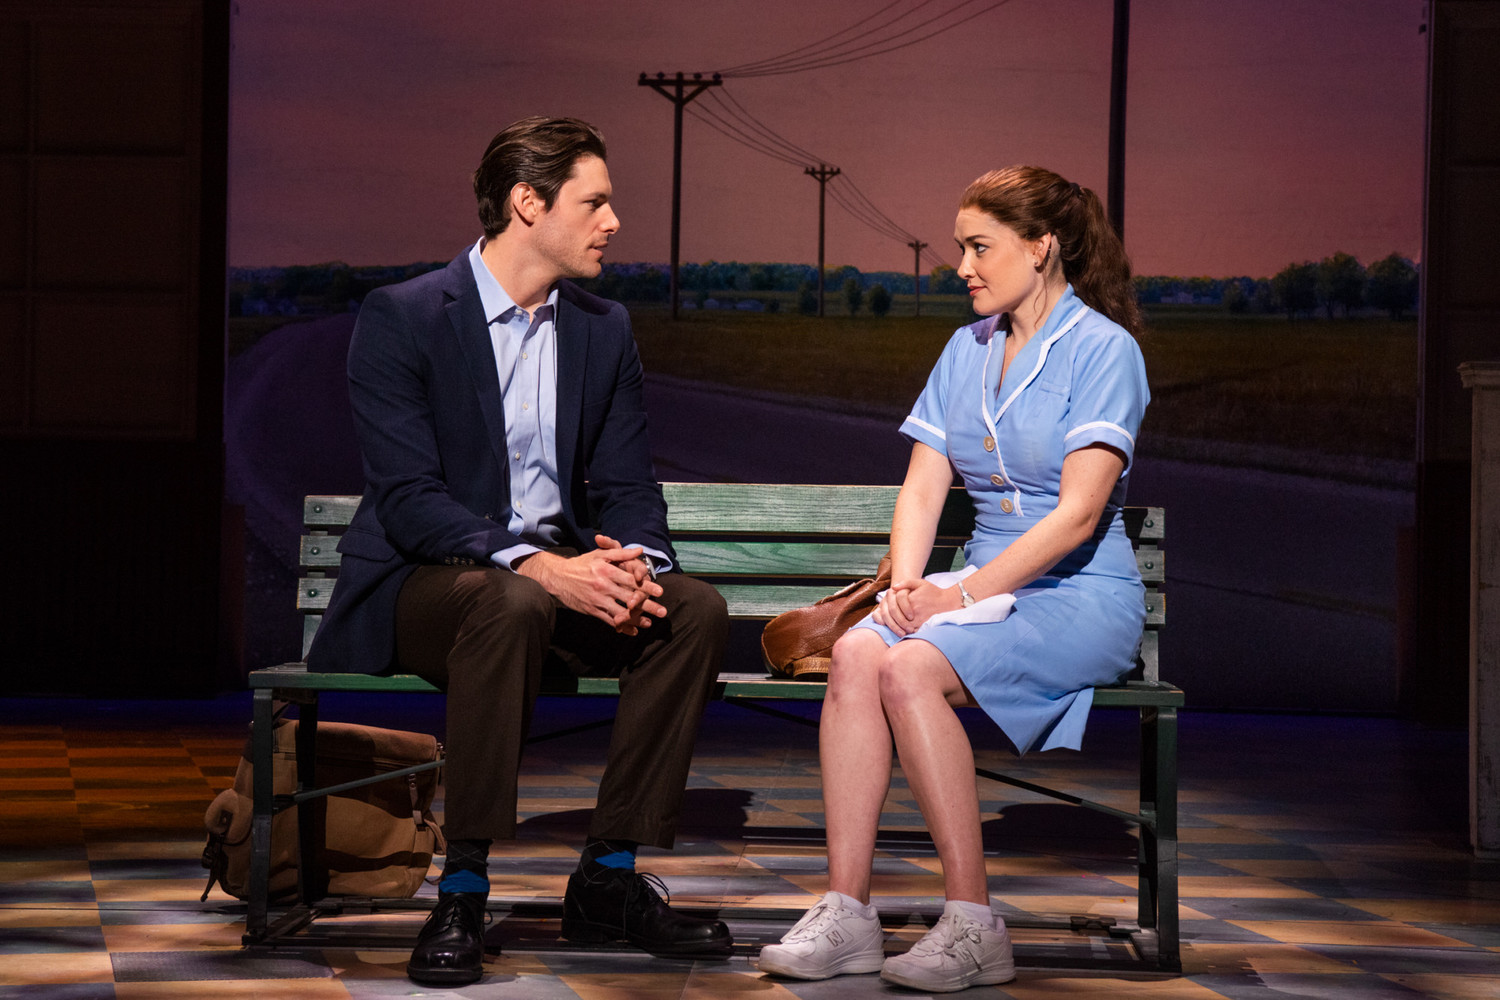 BWW Review: WAITRESS at The Fisher Theatre Serves Up Something Spectacular!